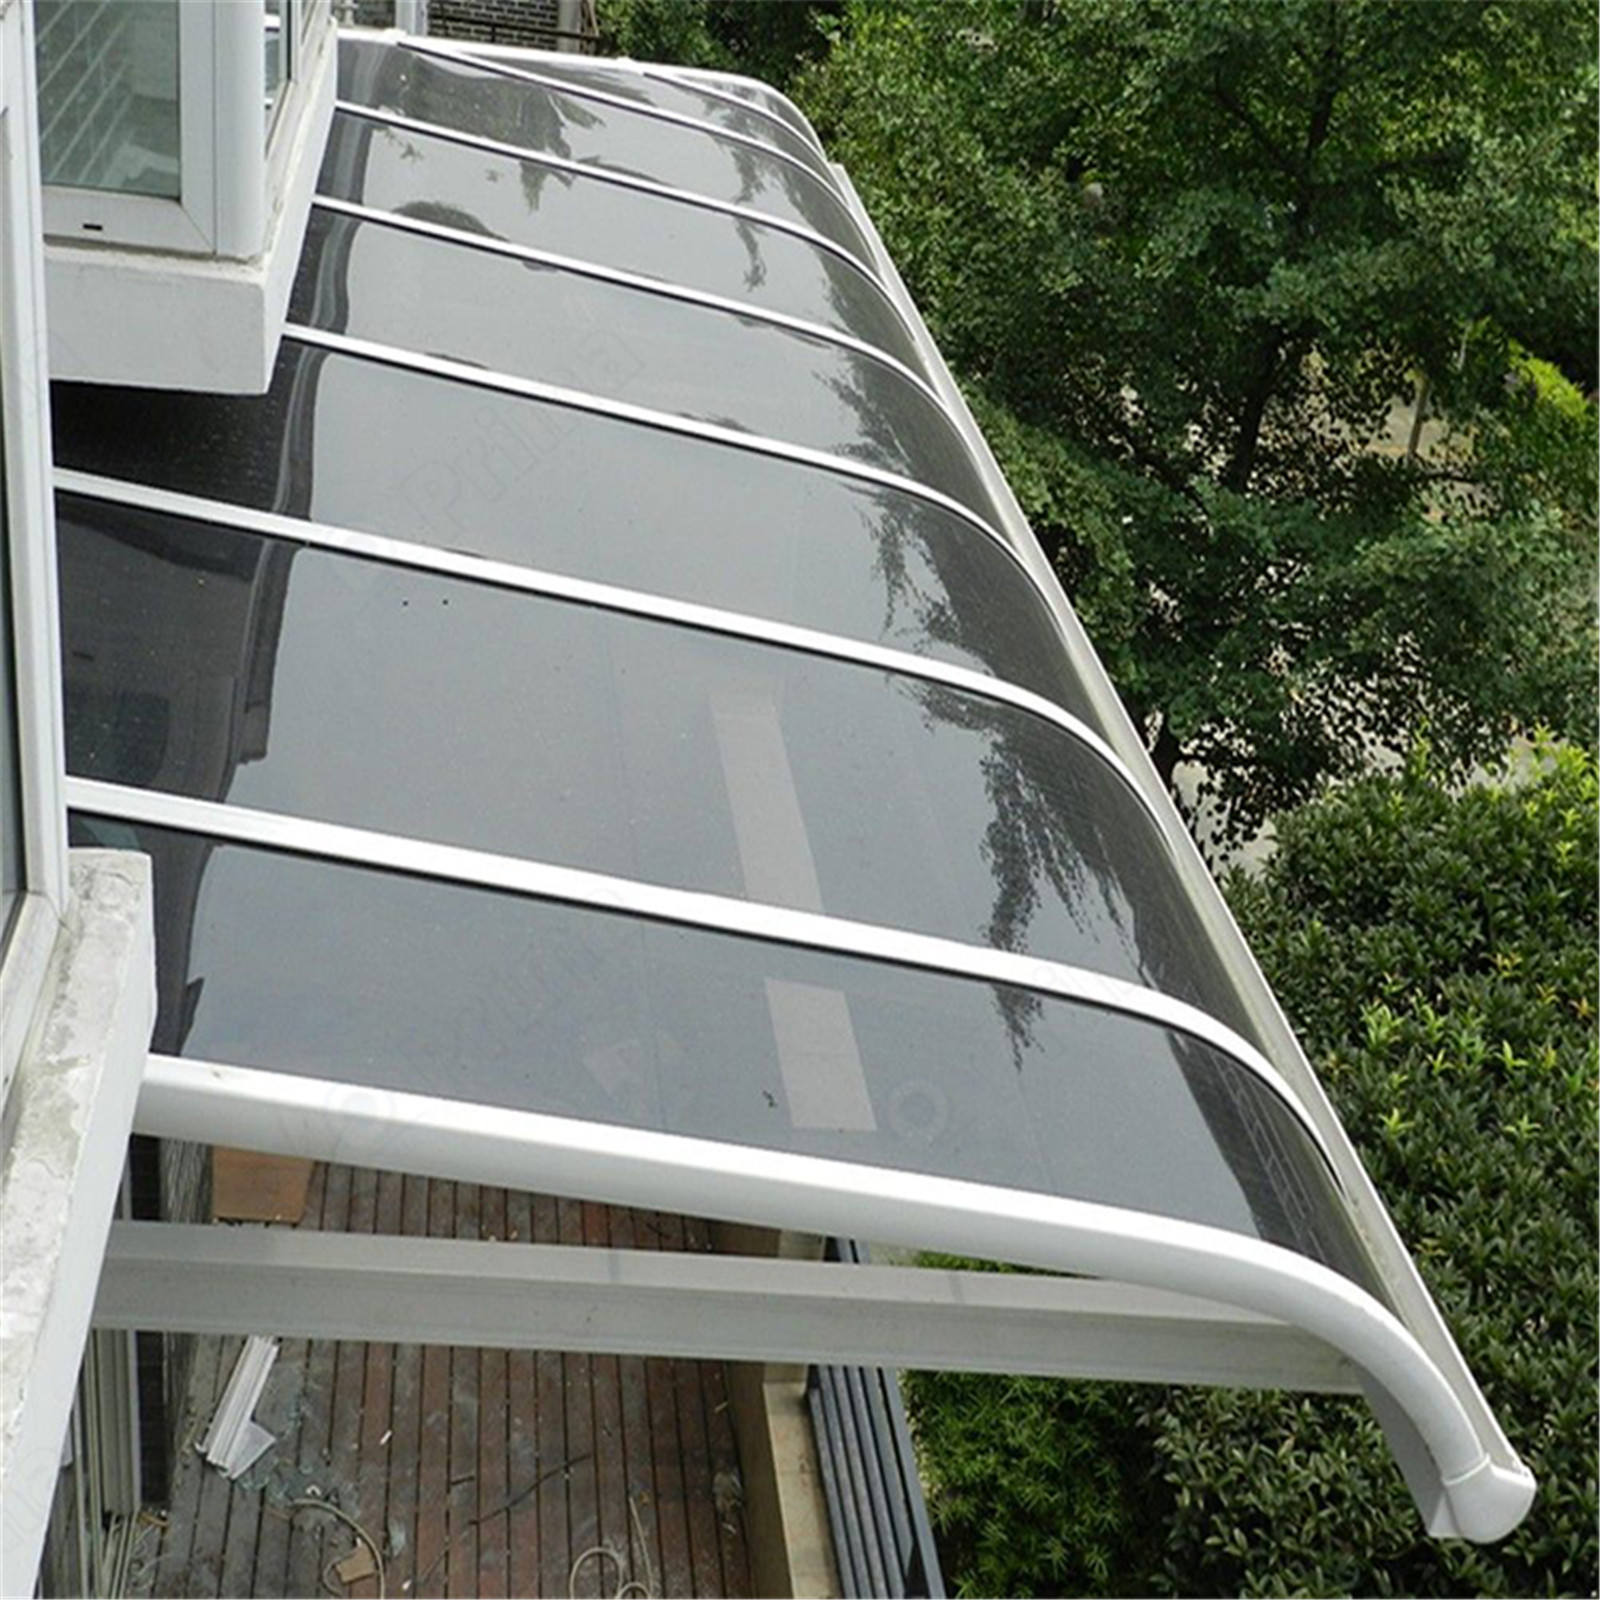 Outdoor Glass Conservatory Aluminum Roof Electric Pergola Retractable Awning Canopy